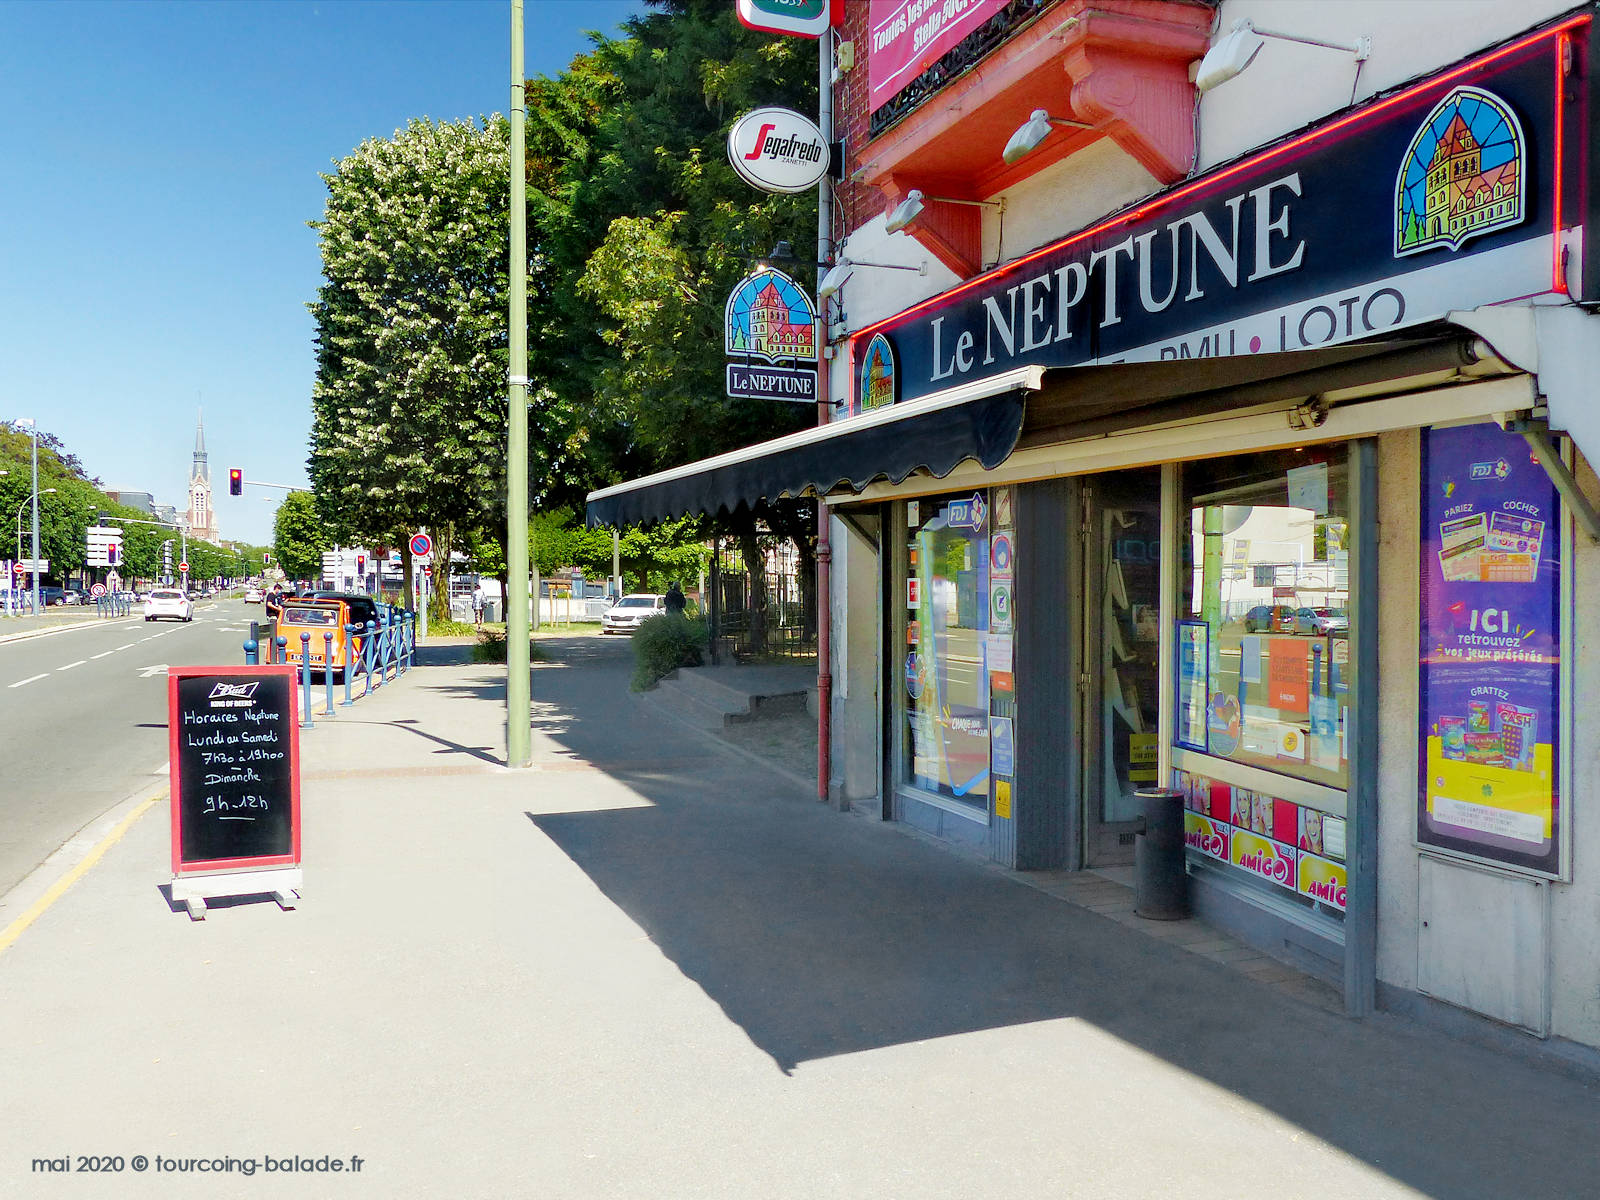 Le Neptune, Tabac Loto Presse, Tourcoing 2020